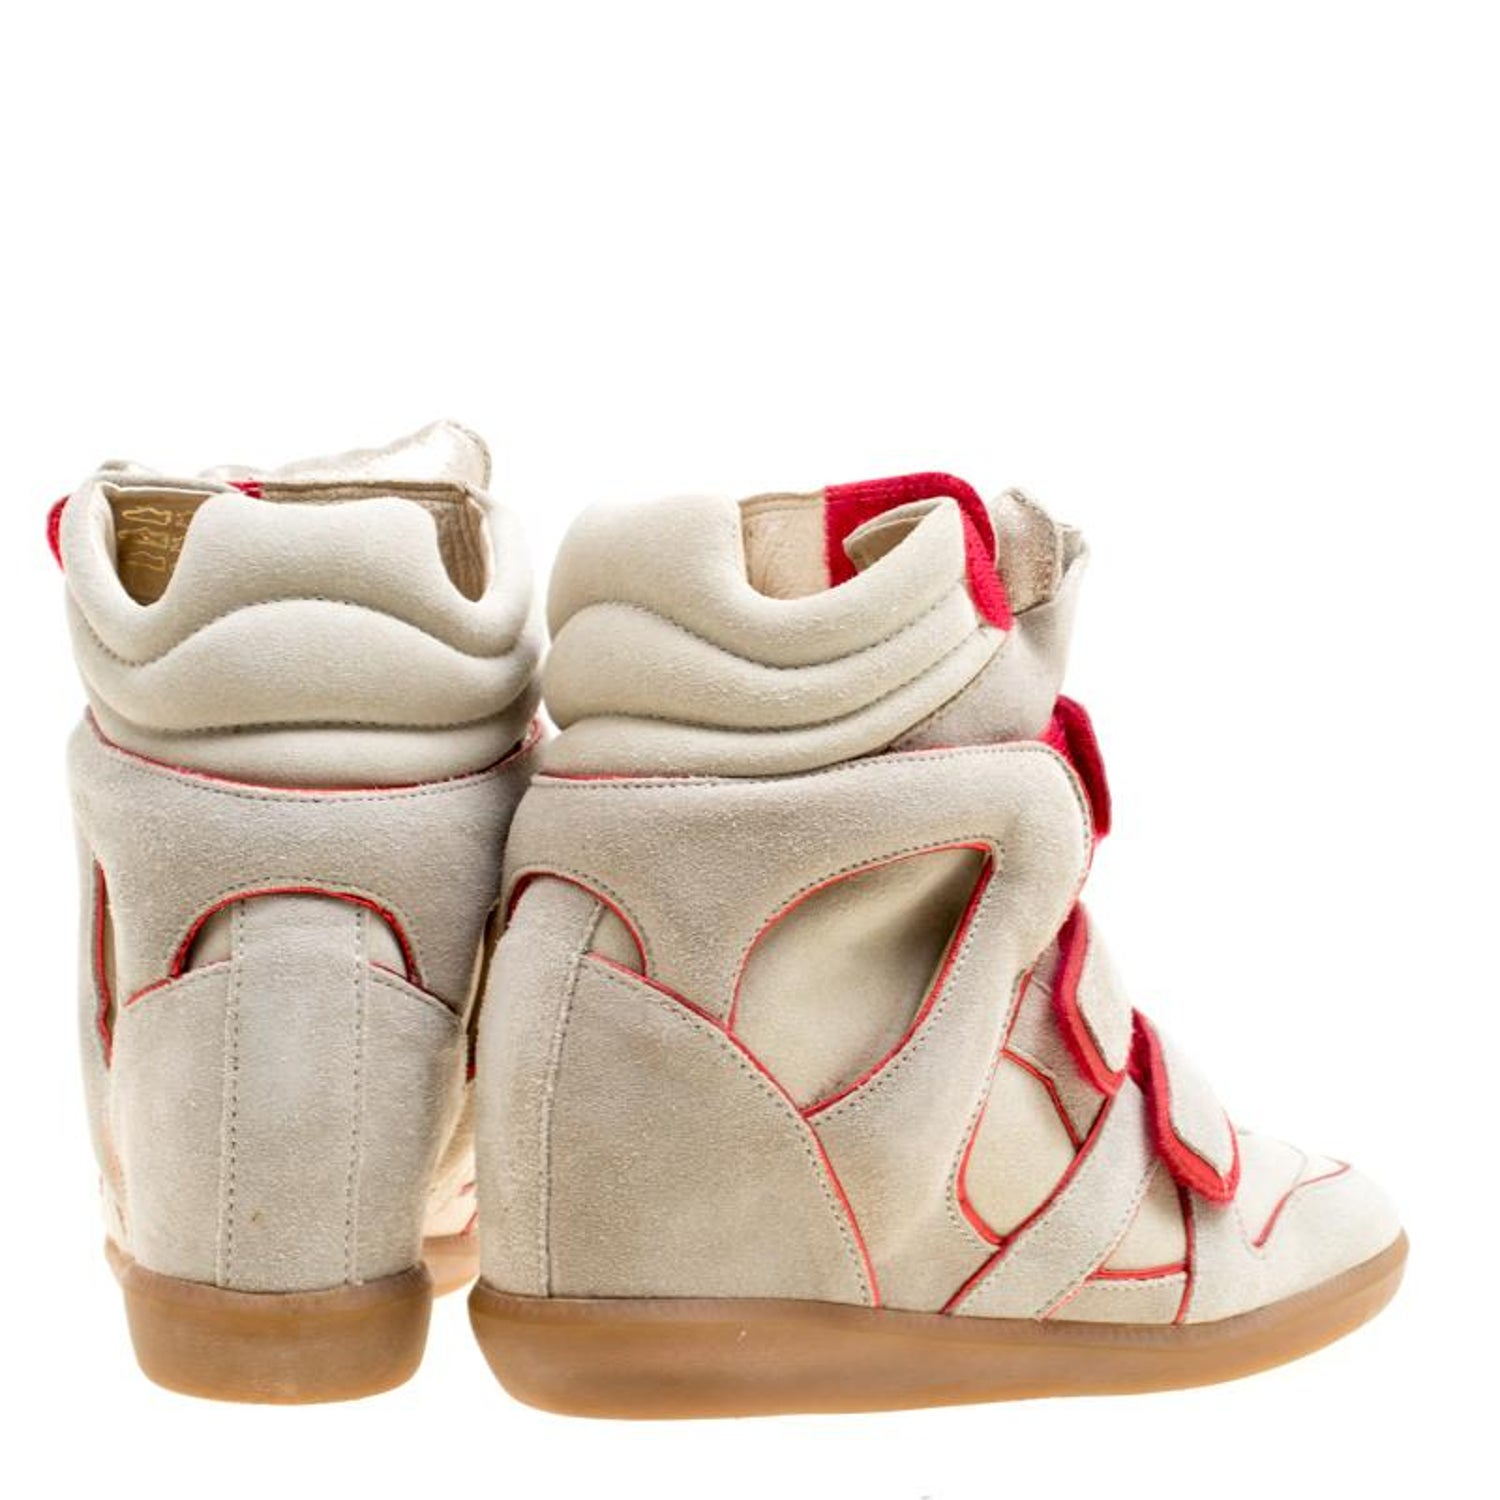 c83a1bf5fbc Isabel Marant Grey Suede with Metalllic Red Leather Trim Bekett Wedge  Sneakers S For Sale at 1stdibs